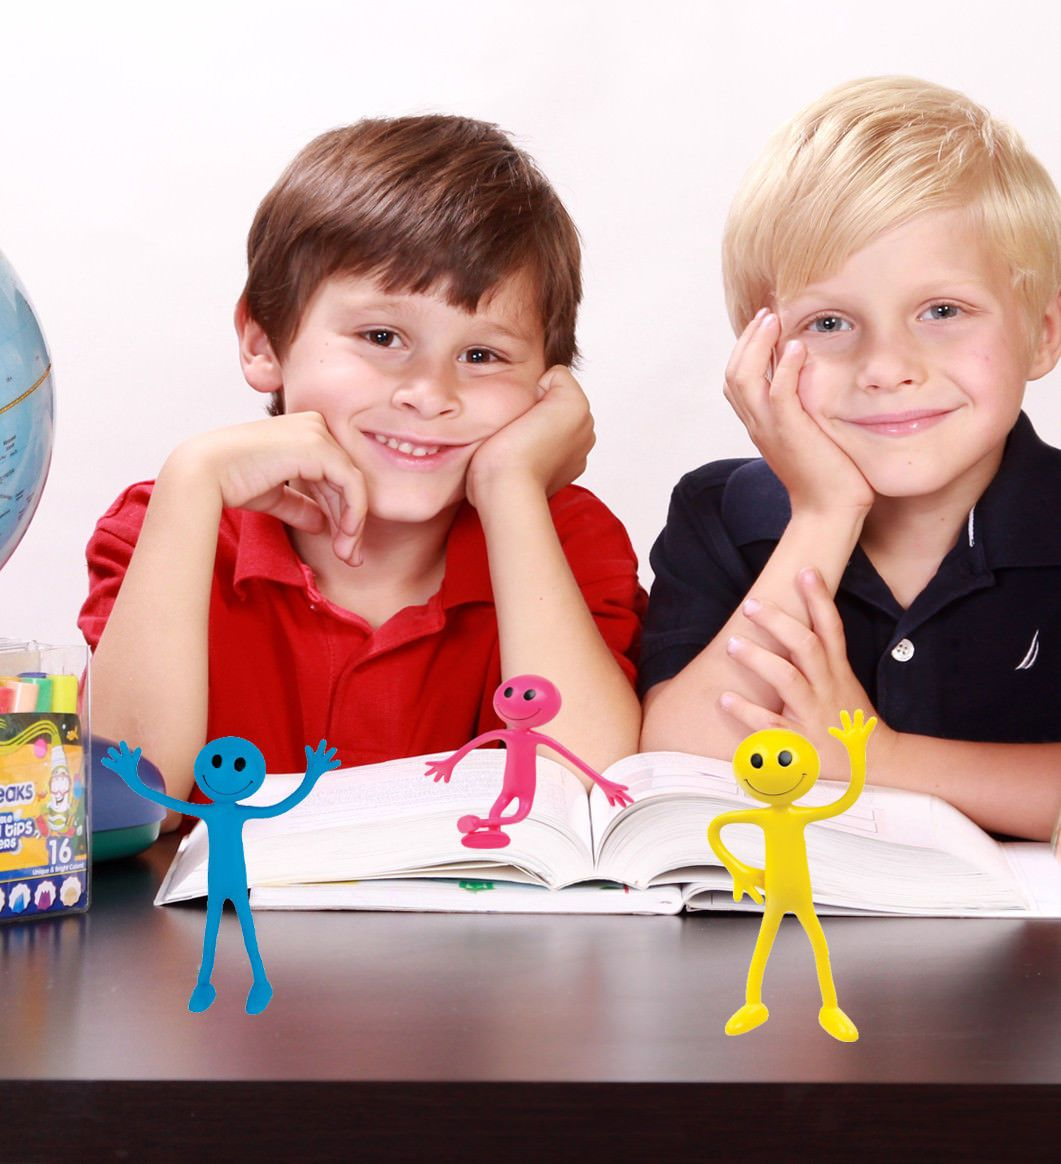 Stretchy and Squidgy fid stress toys stretchy fid toys